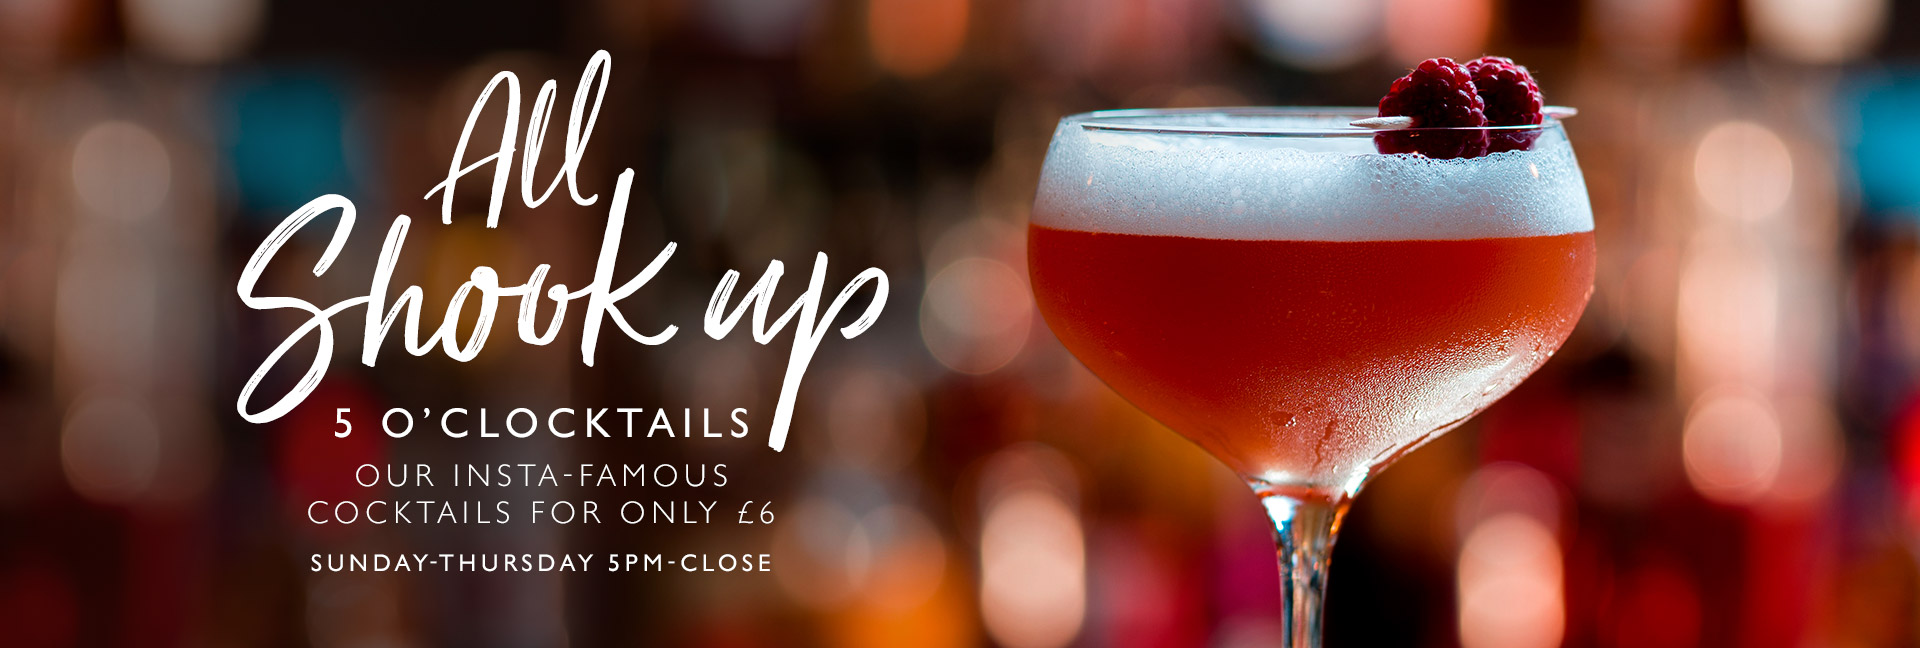 5 O'clocktails at All Bar One Charing Cross - Book now